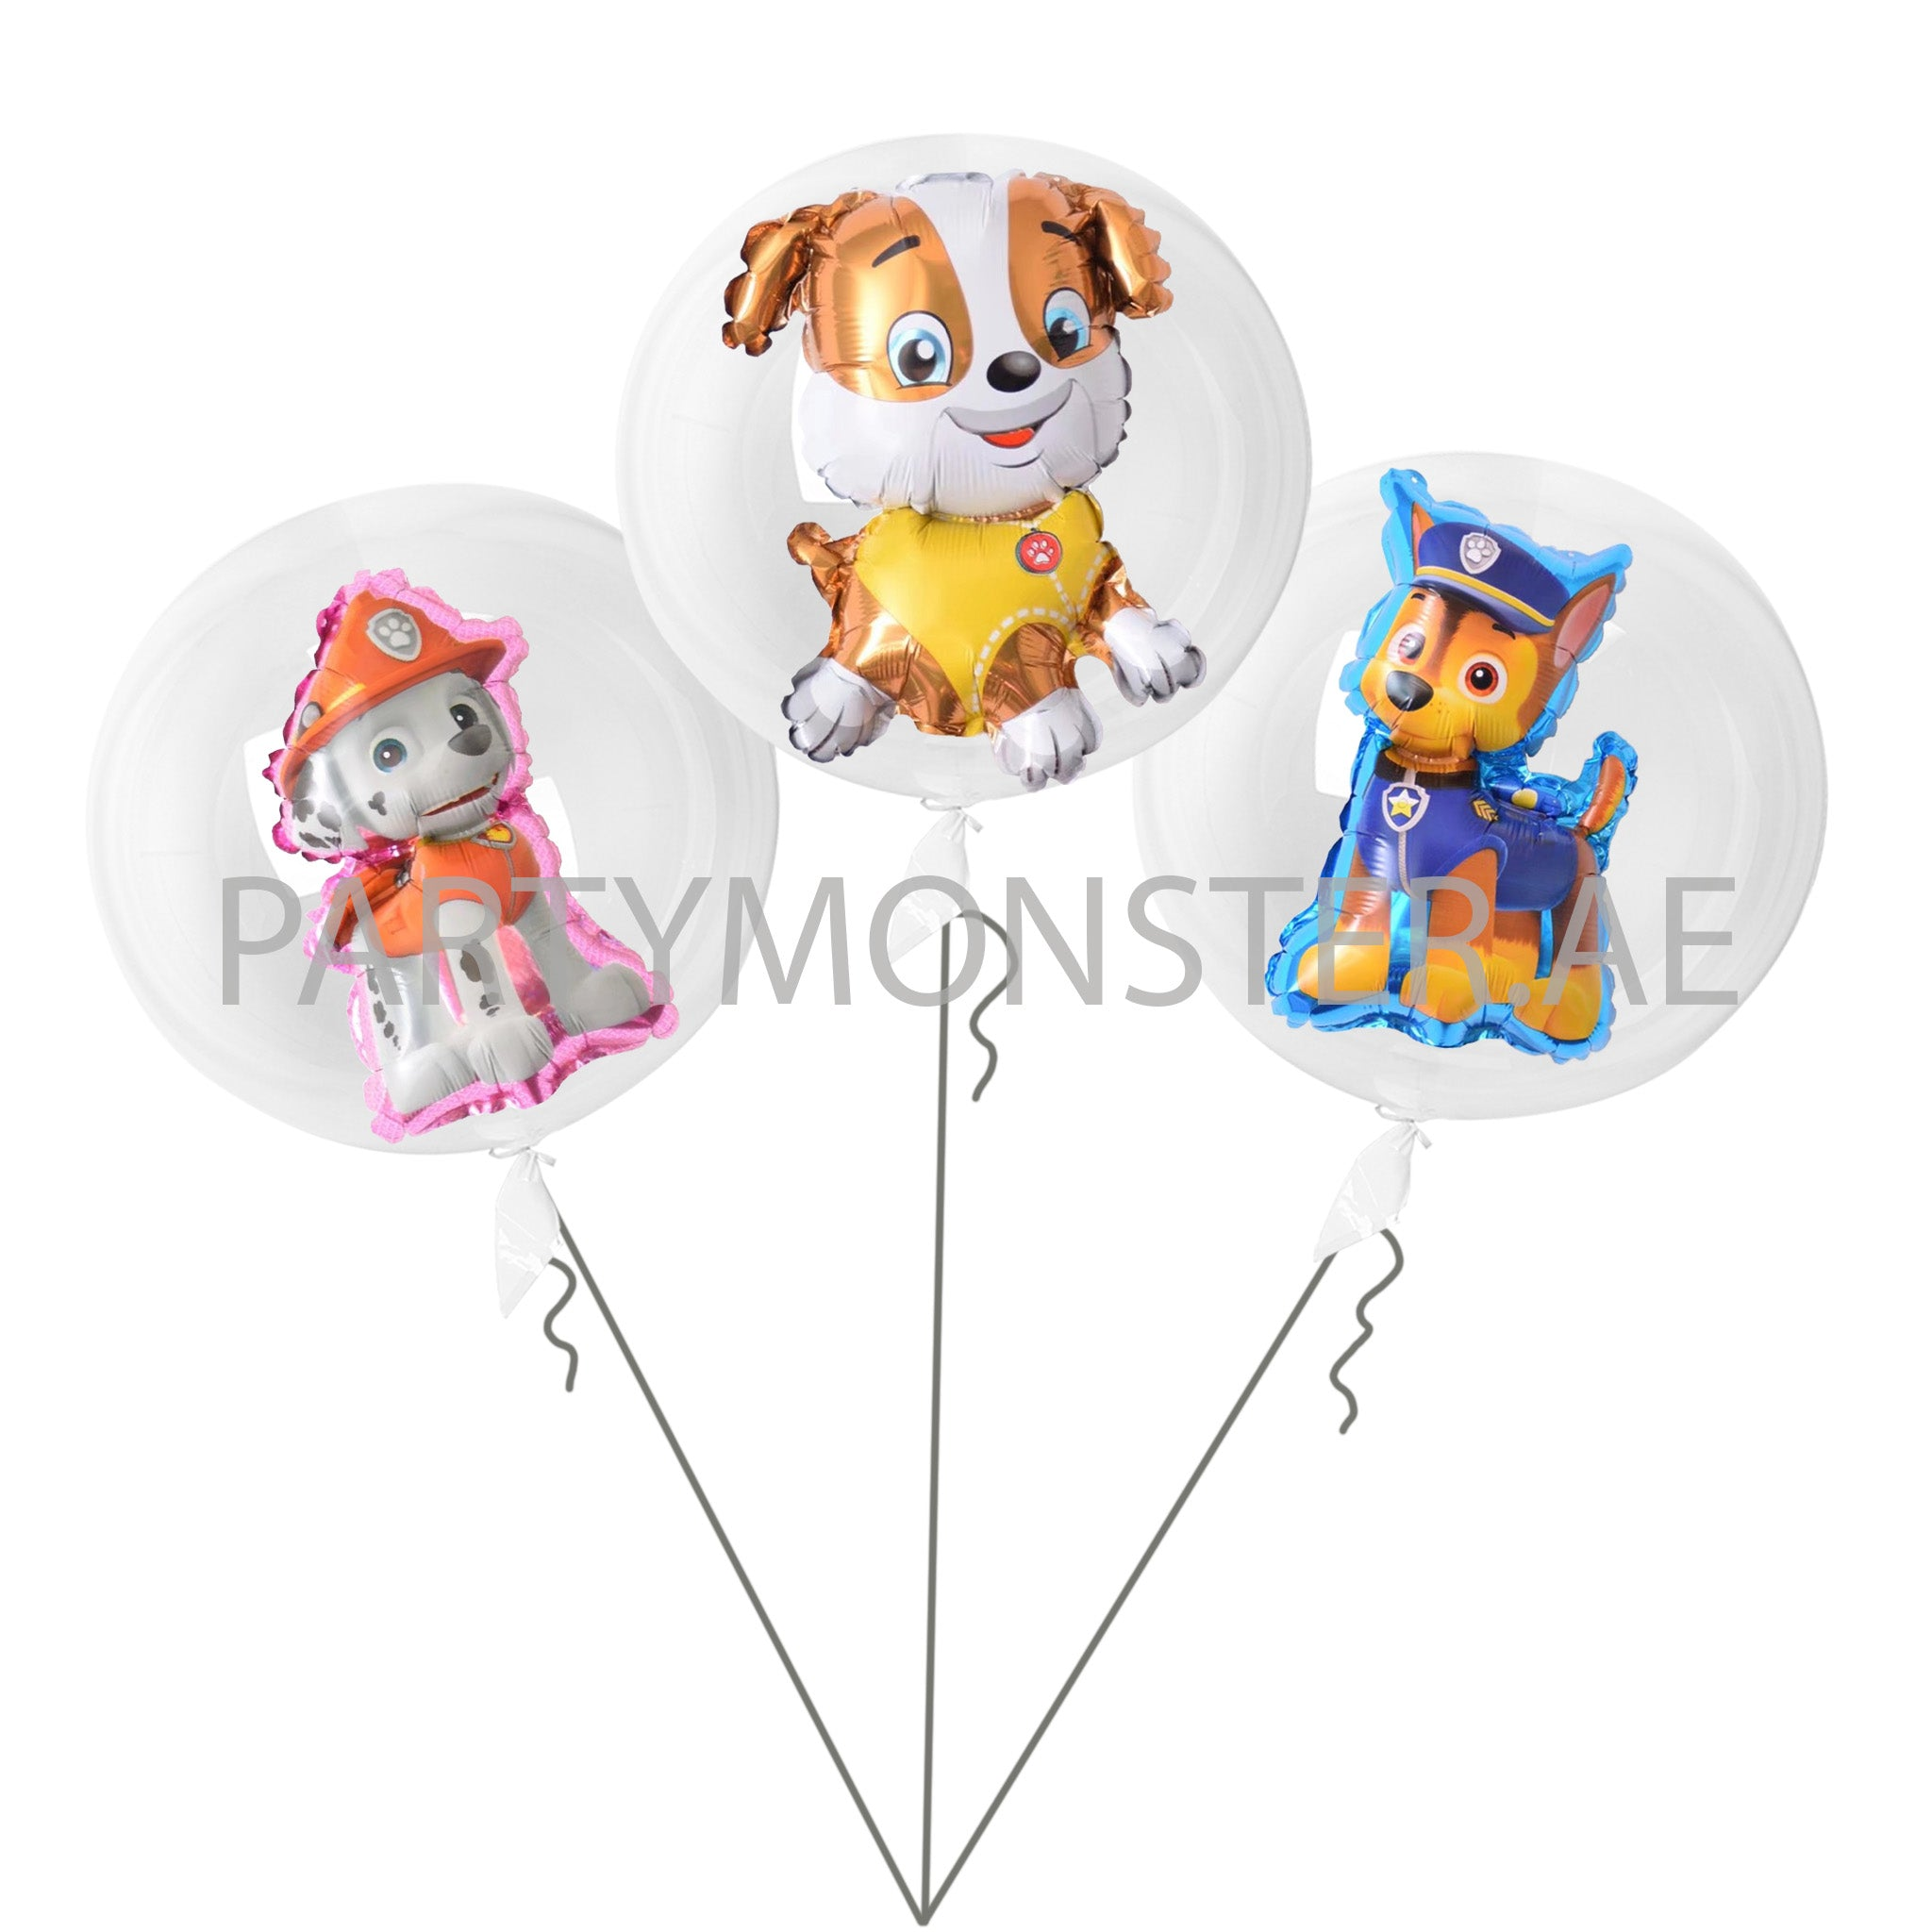 Paw Patrol balloons Bouquet for sale online in Dubai